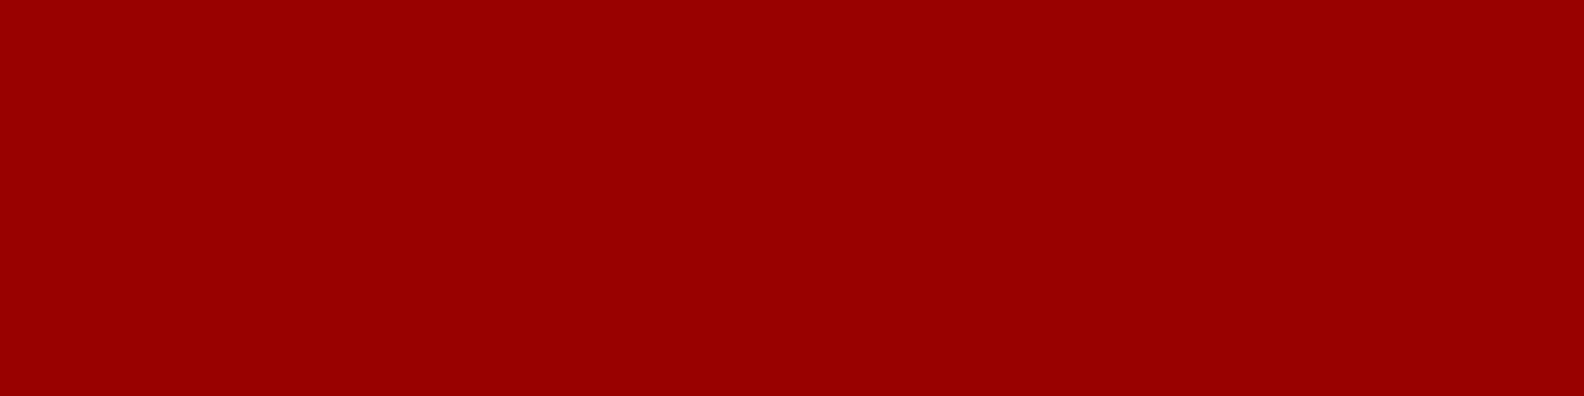 1584x396 USC Cardinal Solid Color Background